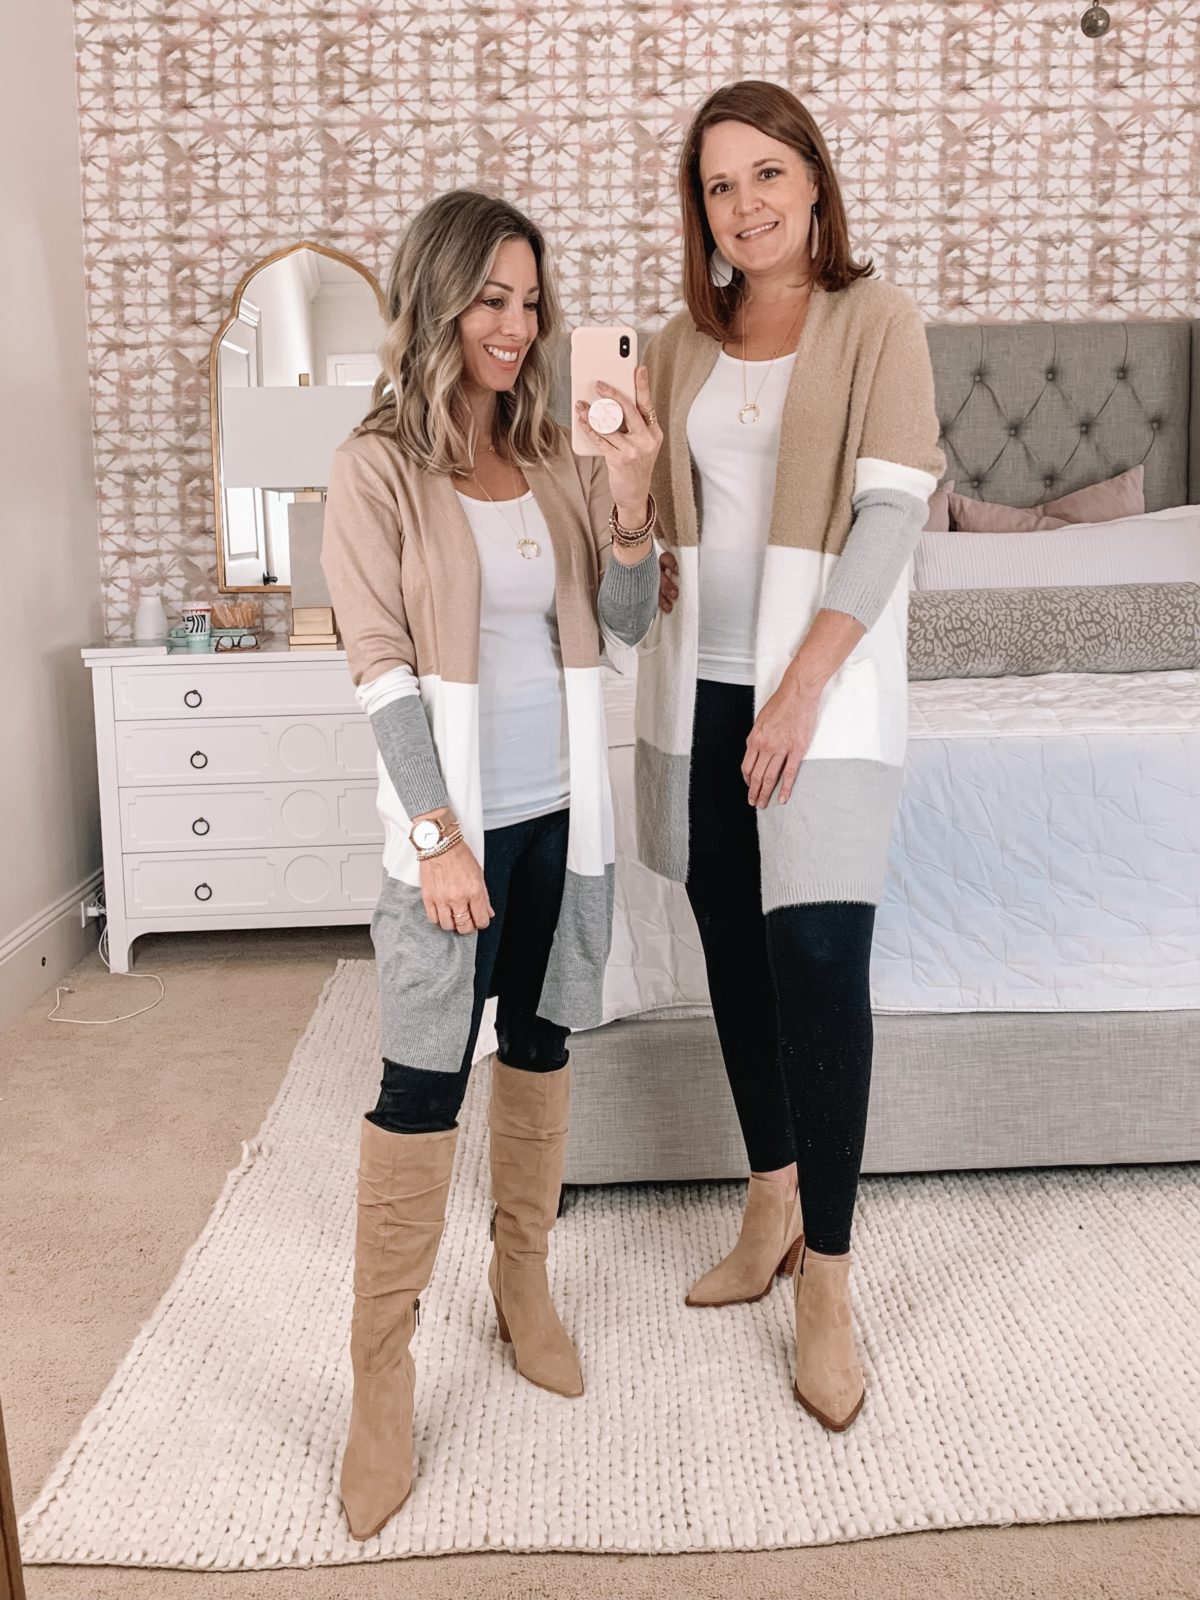 Amazon Fashion Faves, Colorblock Cardigan, leggings, Knee High Boots, Booties